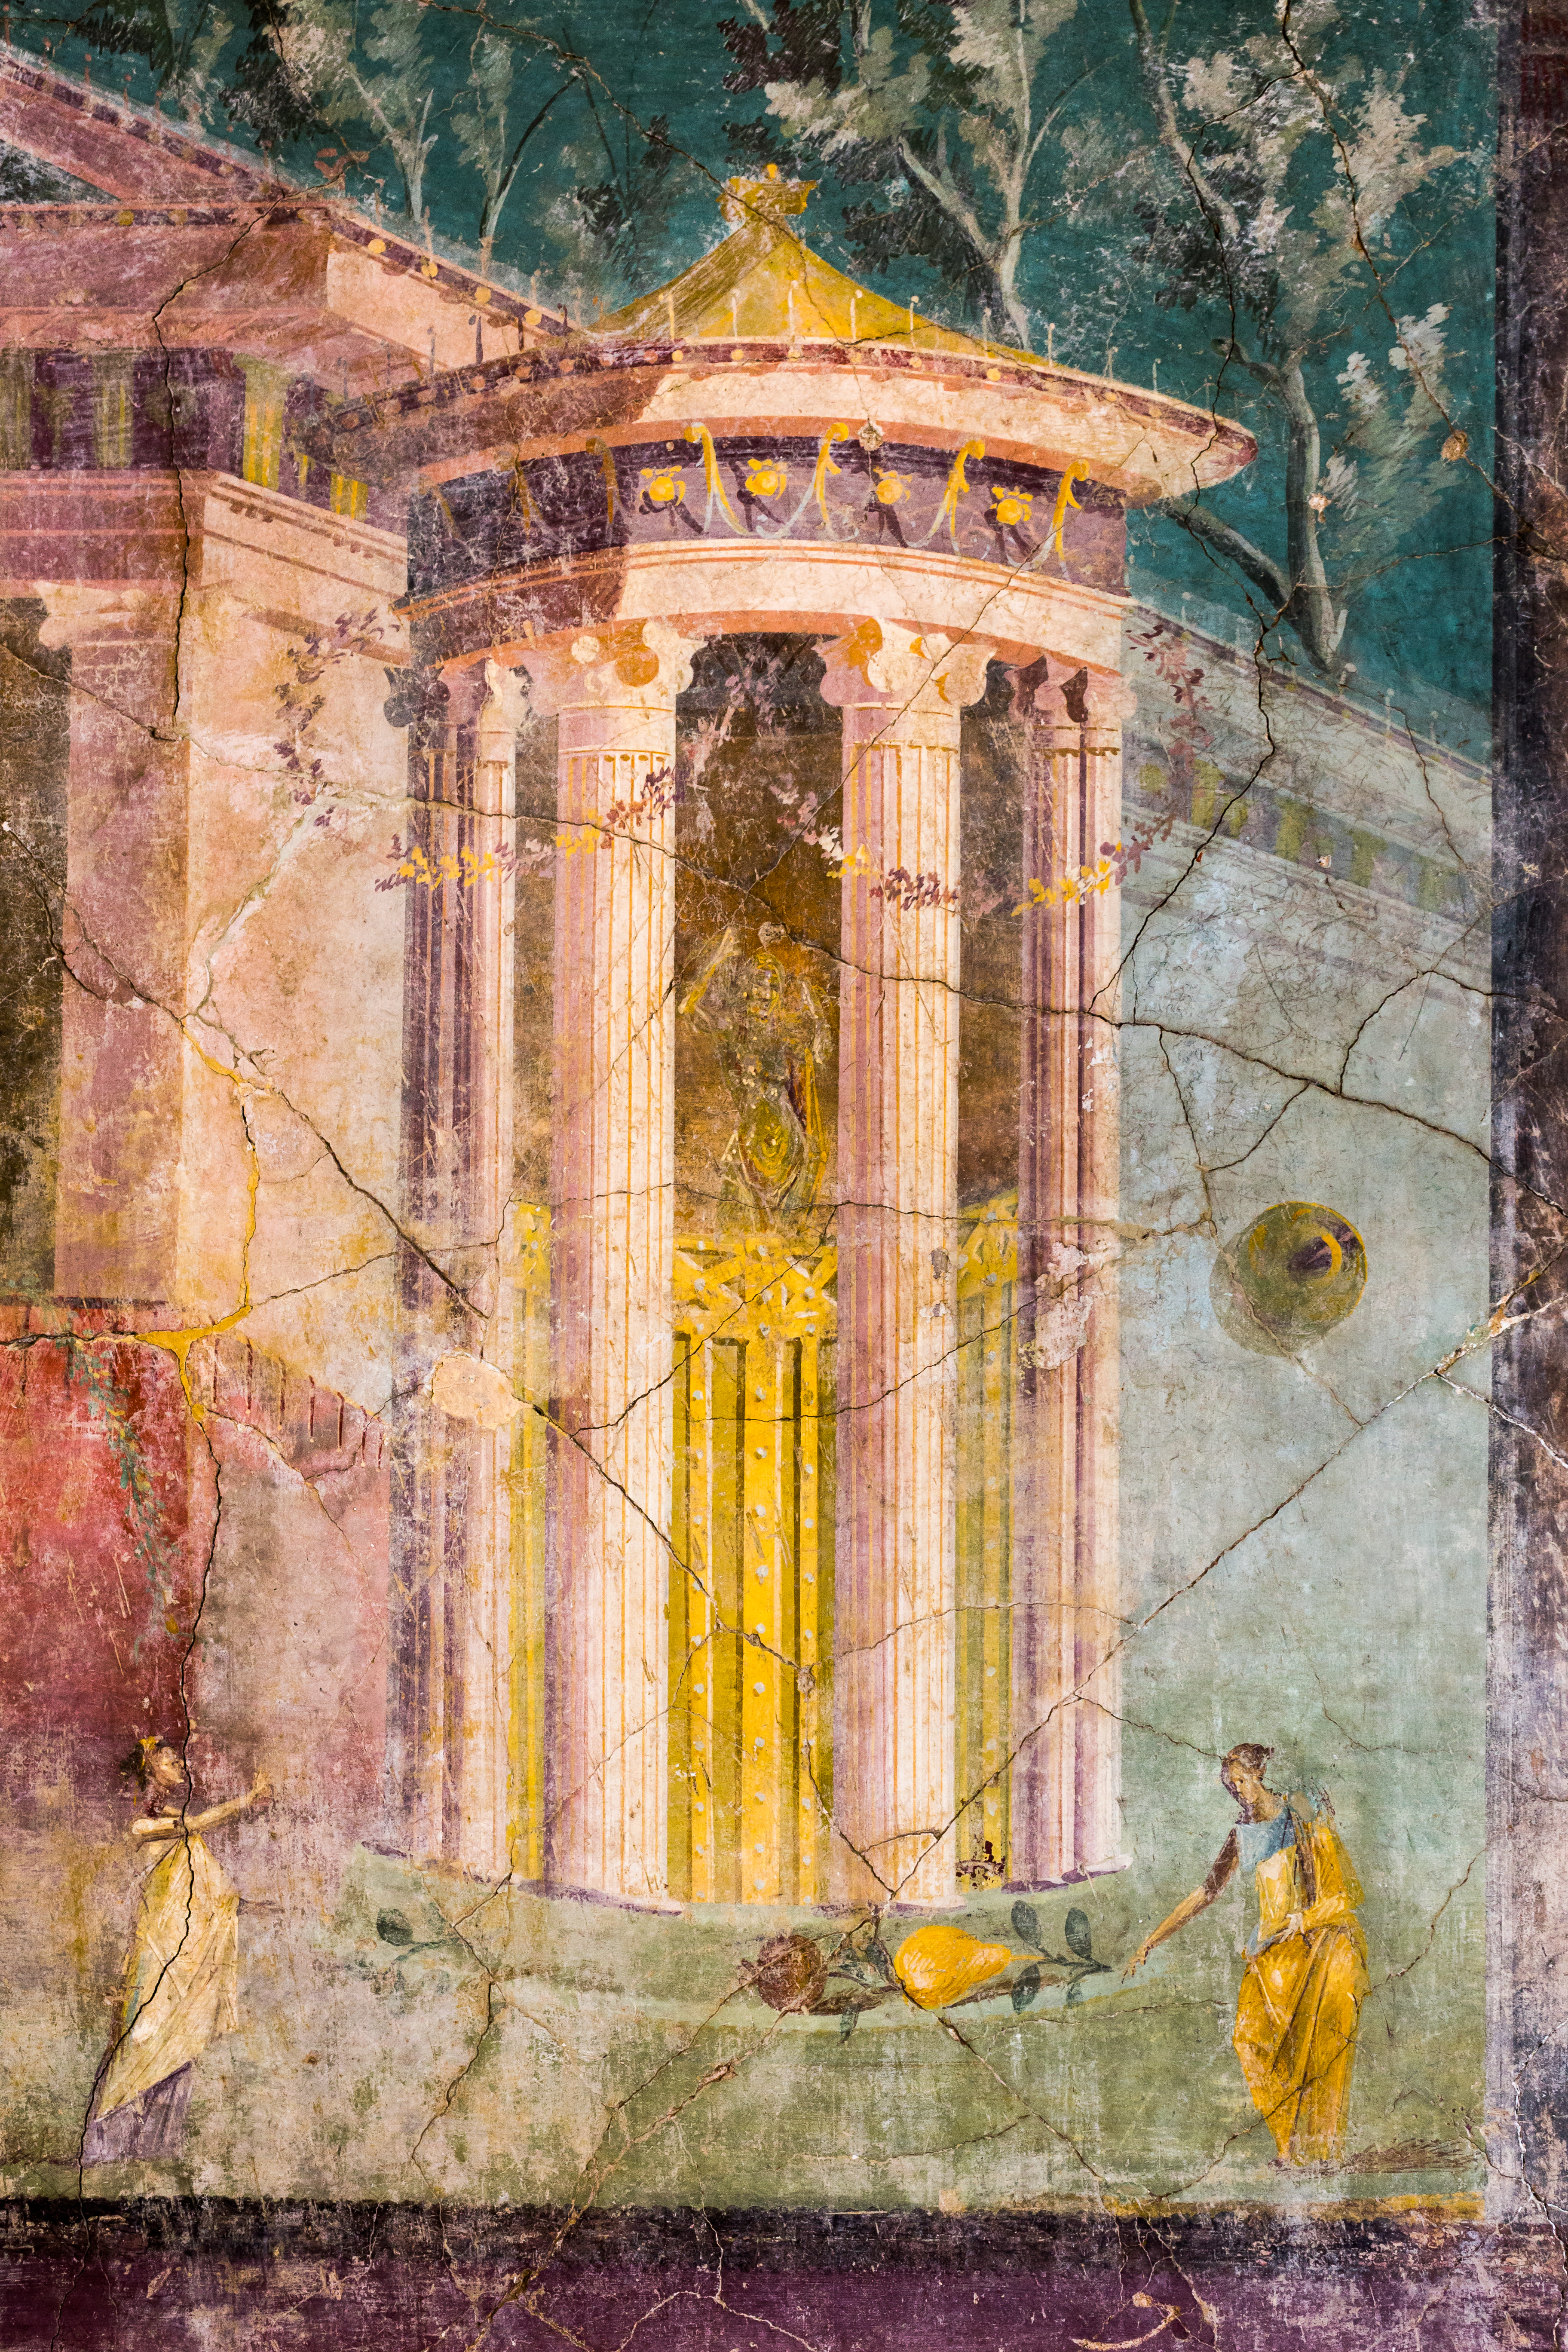 https://upload.wikimedia.org/wikipedia/commons/6/63/Wall_painting_-_entrance_to_a_sanctuary_with_tholos_-_Pompeii_%28VI_41_Insula_Occidentalis%29_-_Napoli_MAN_8594_-_03.jpg